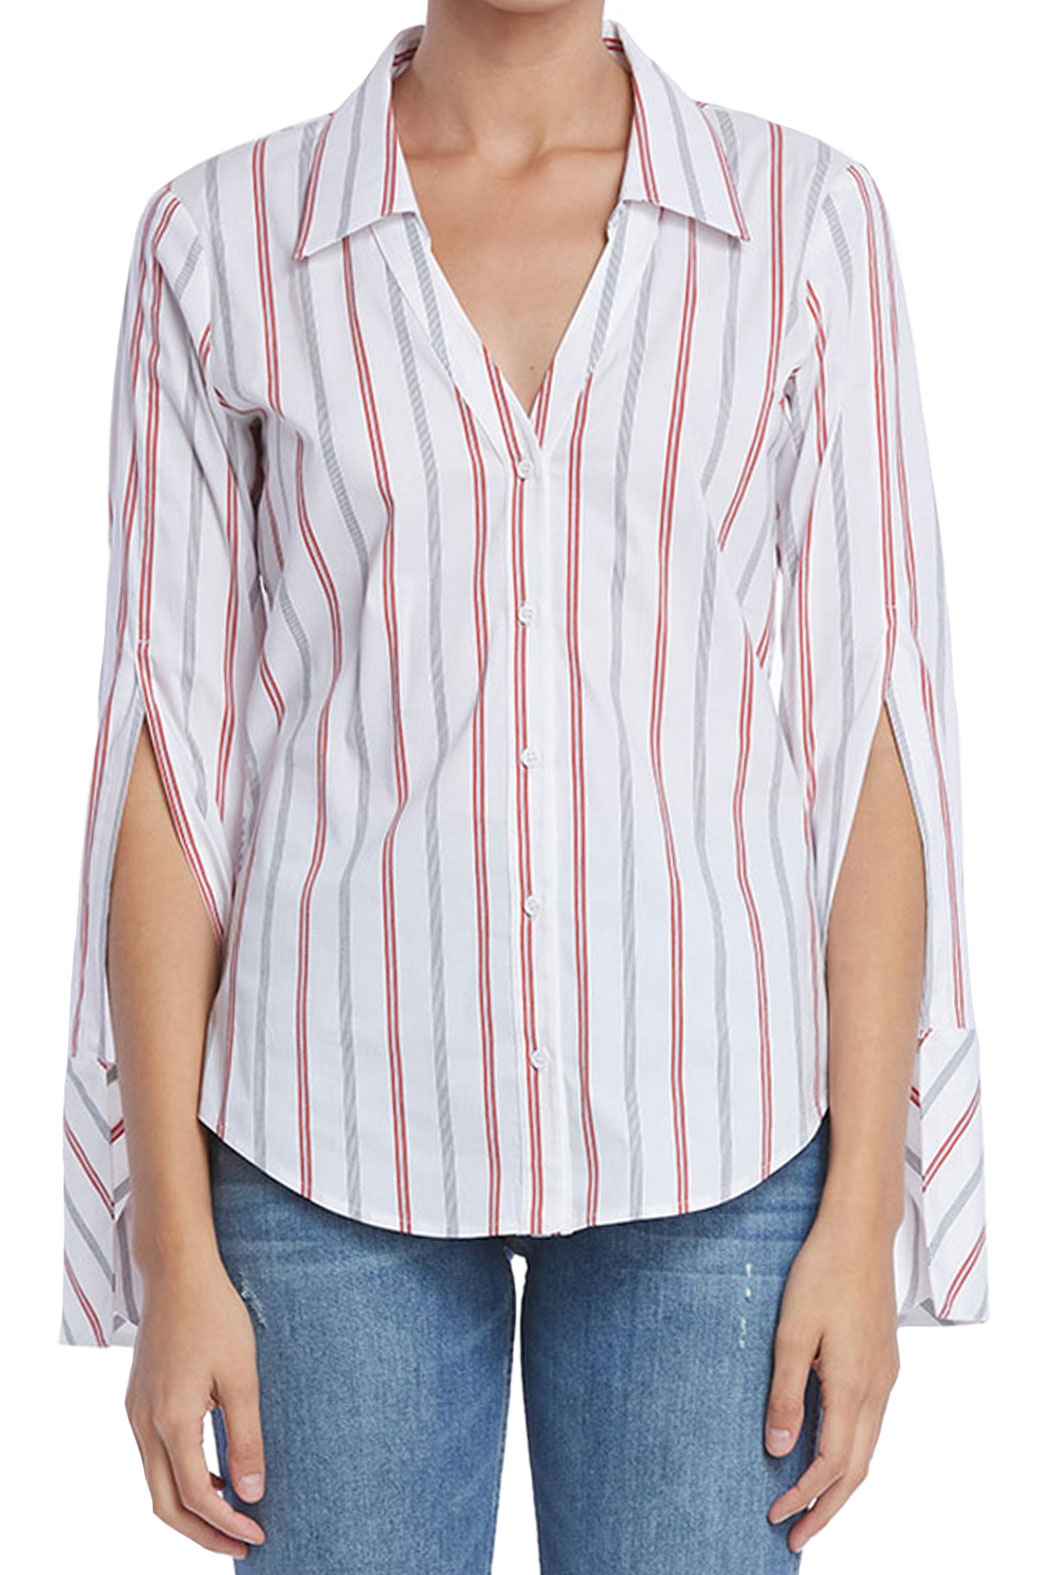 Front view of ruched shirt from Bailey 44.